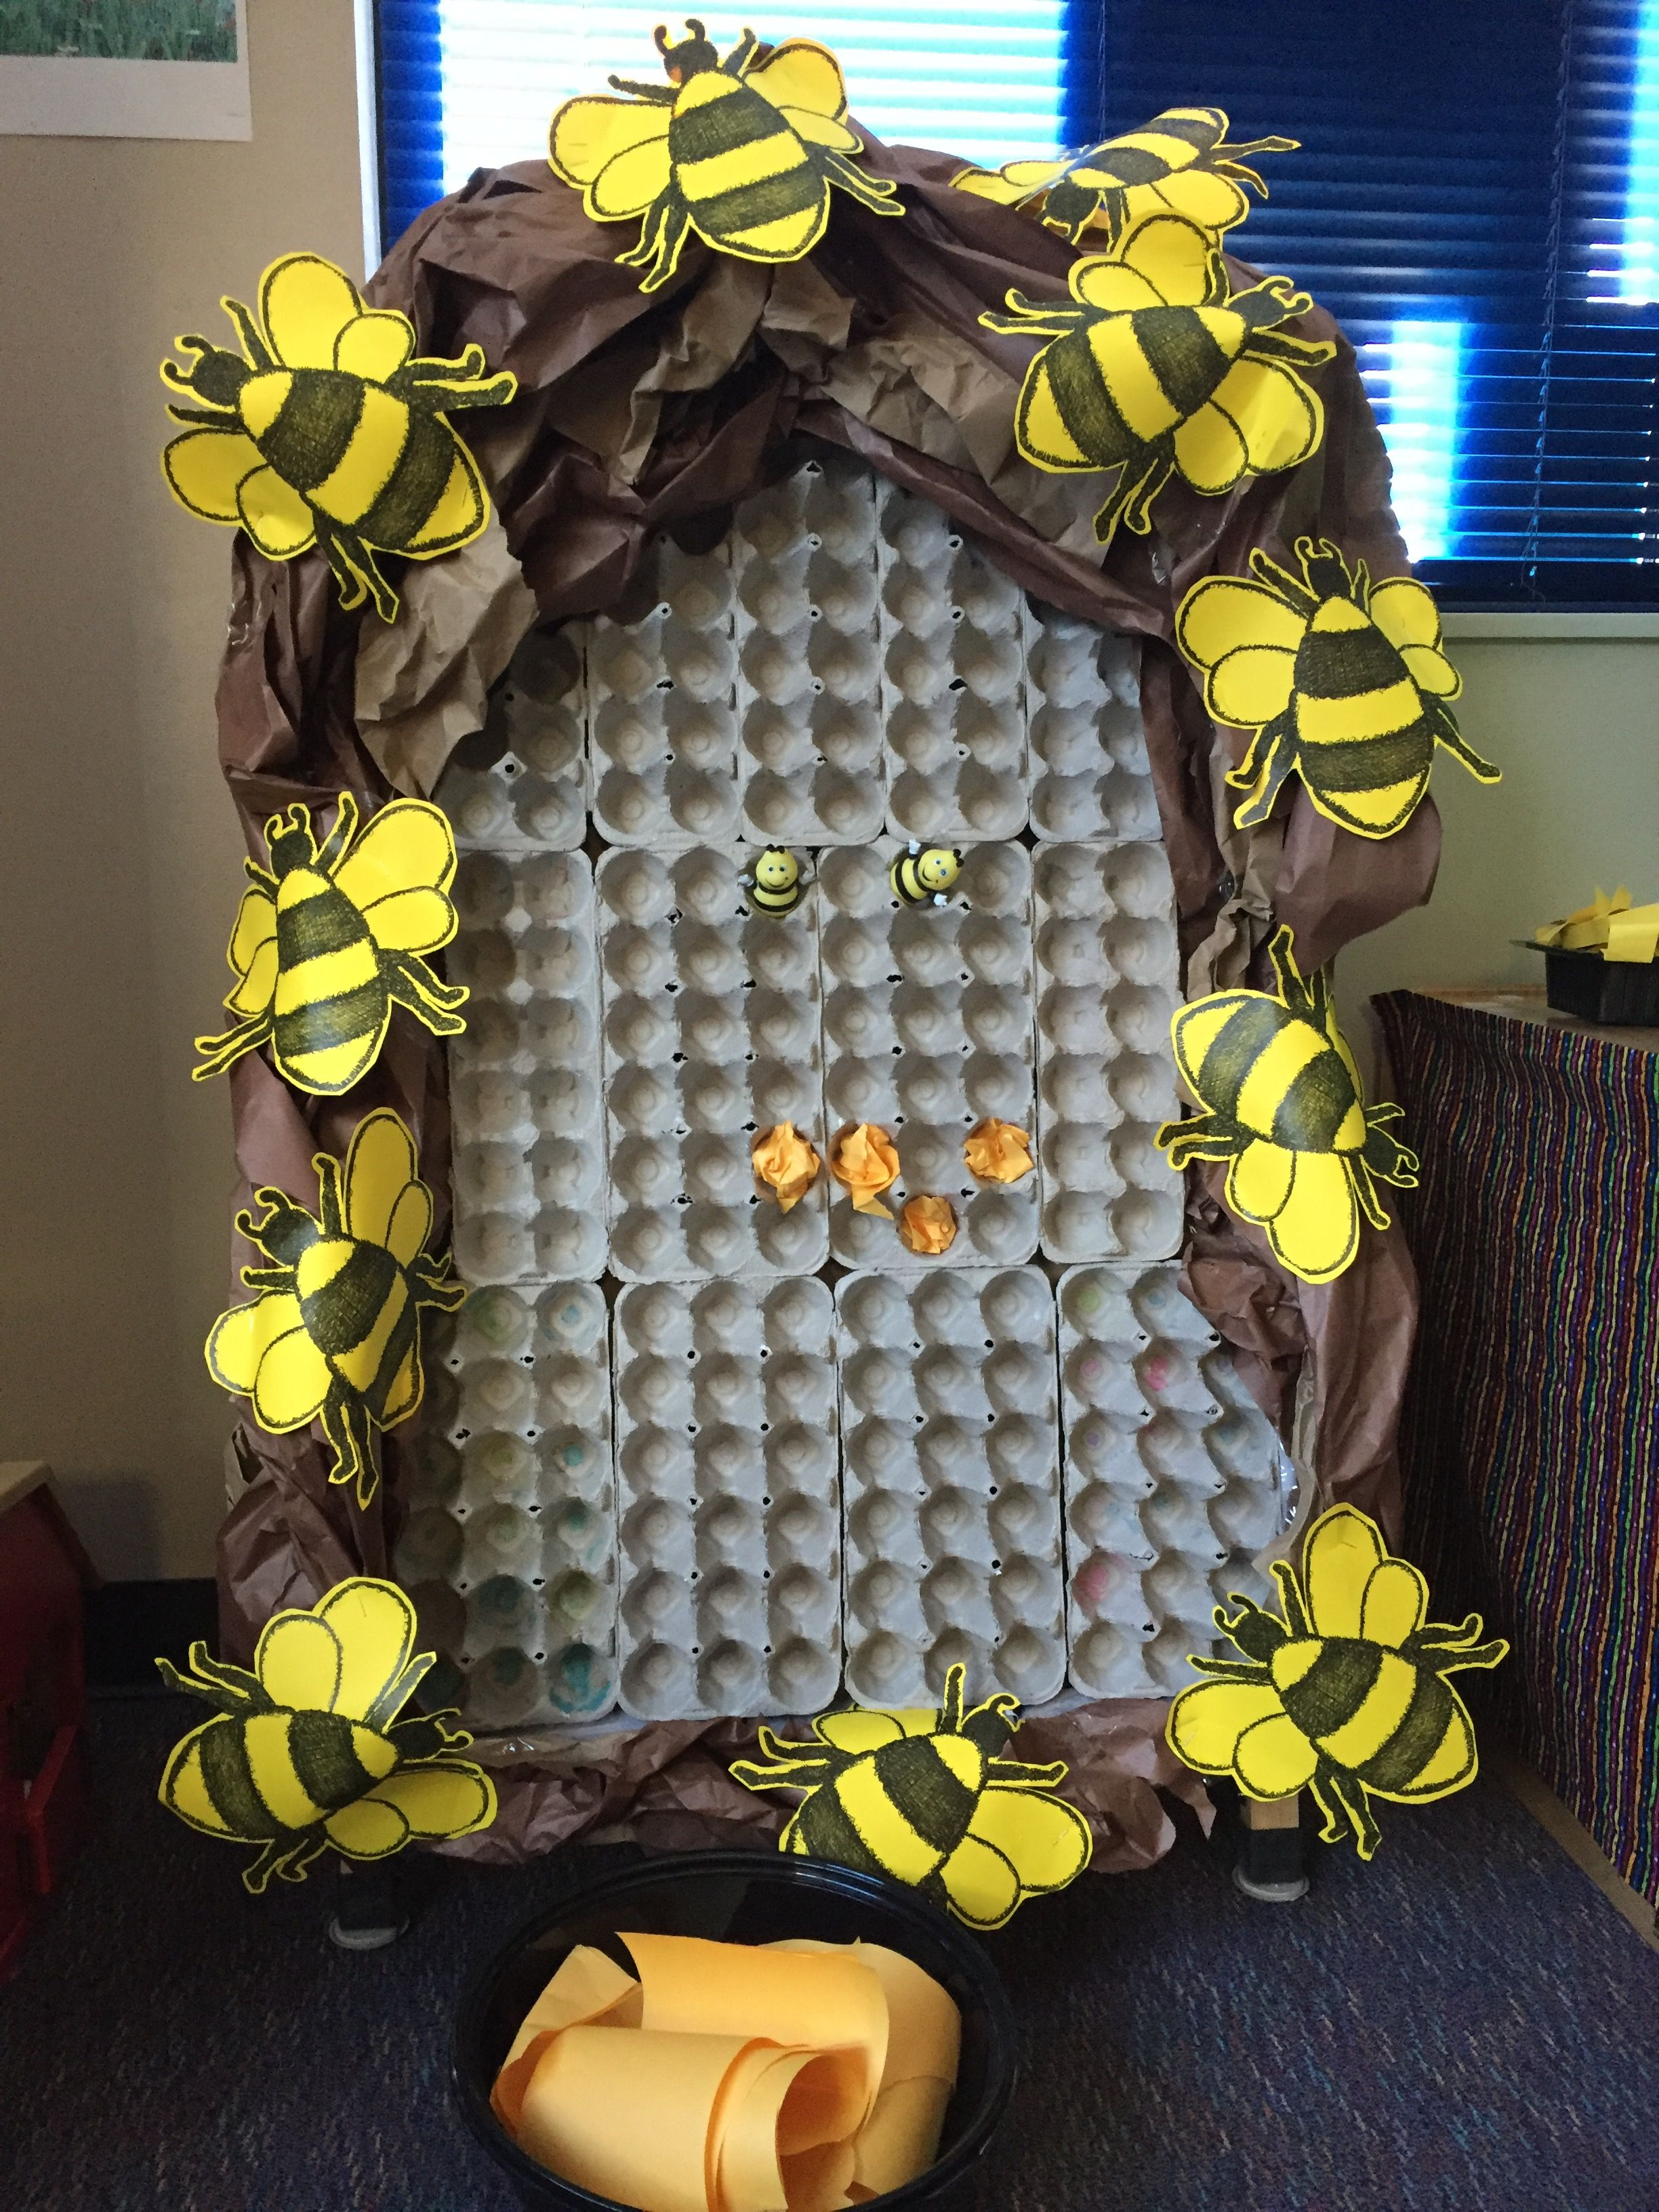 Prehschool Mobile Bee Hive Version Created With